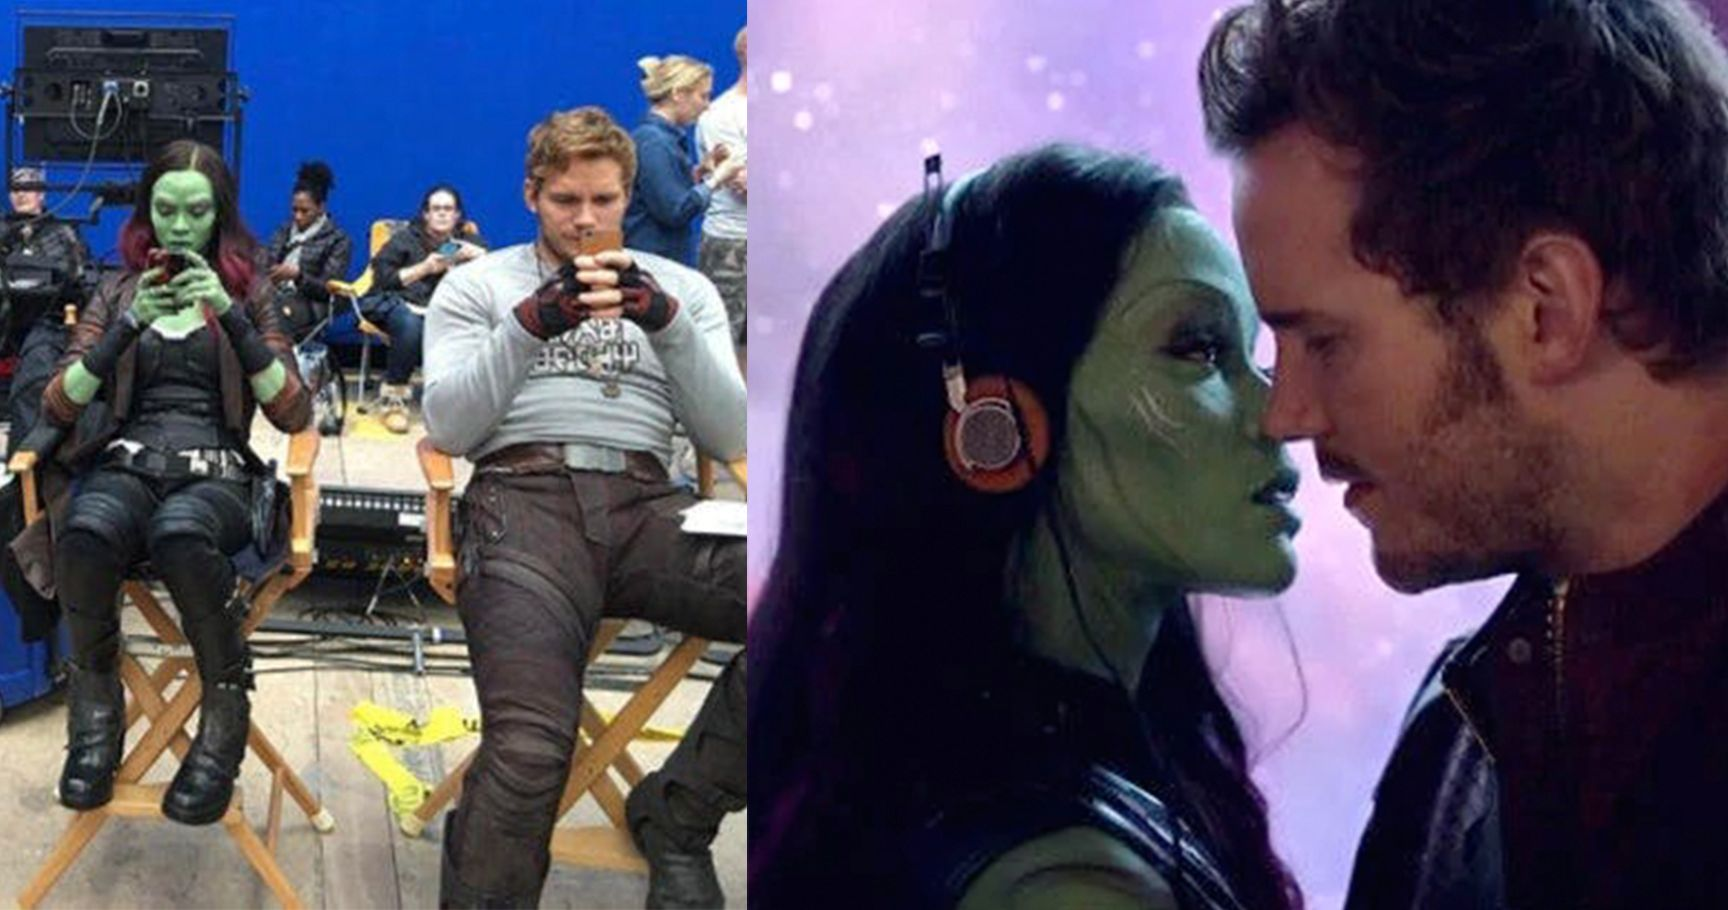 The Marvel Universe: 15 Behind-The-Scenes Photos You Can MARVEL At